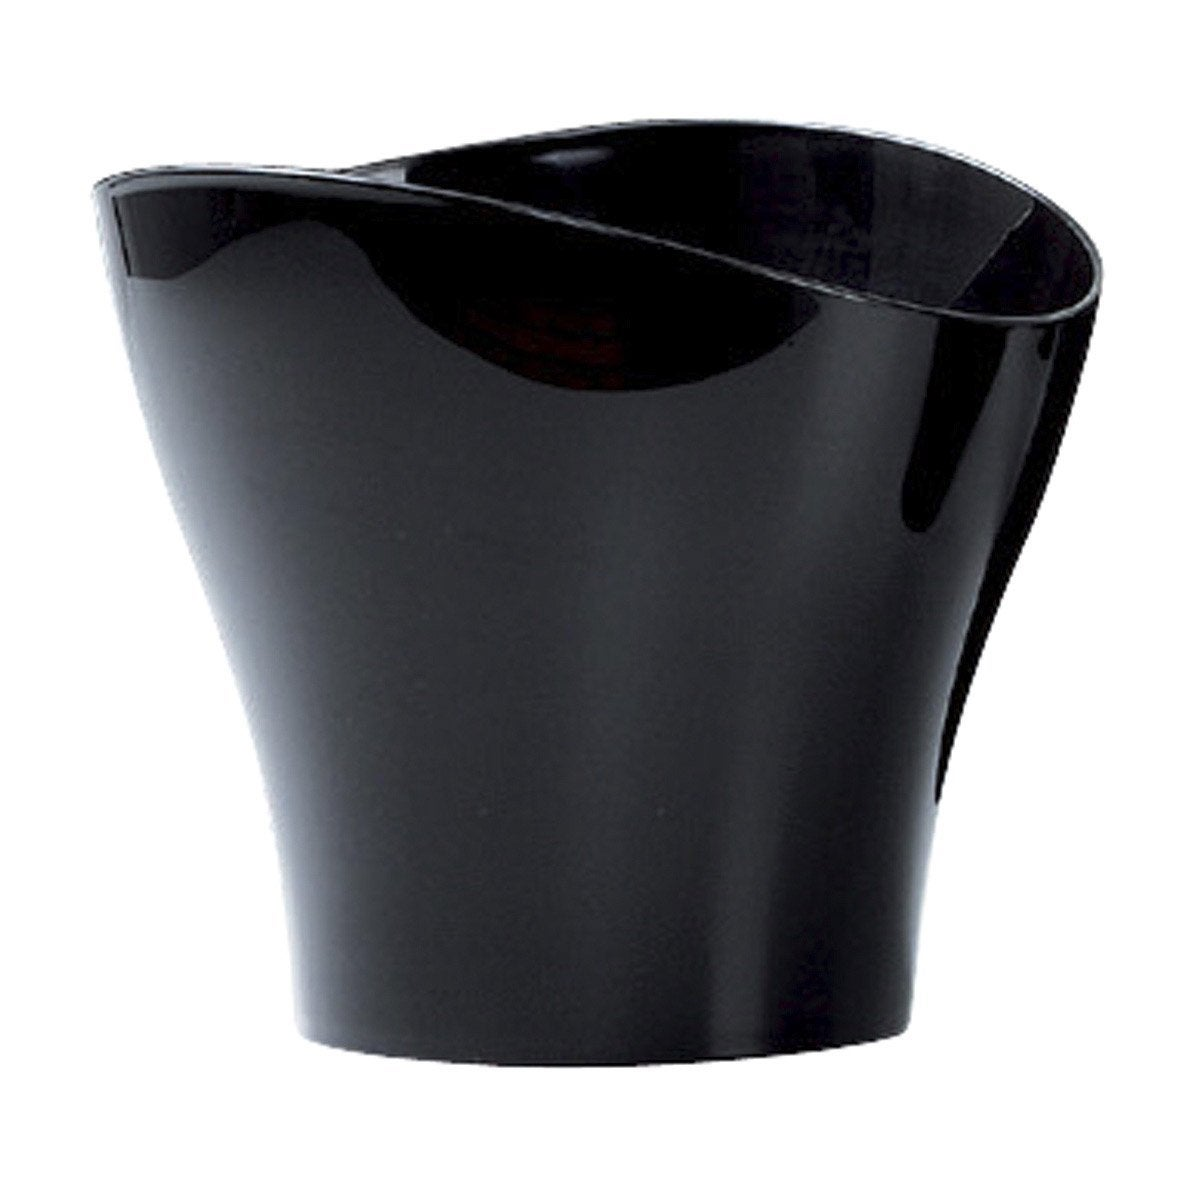 cache pot en plastique scheurich diam 17 x haut 14 cm noir leroy merlin. Black Bedroom Furniture Sets. Home Design Ideas